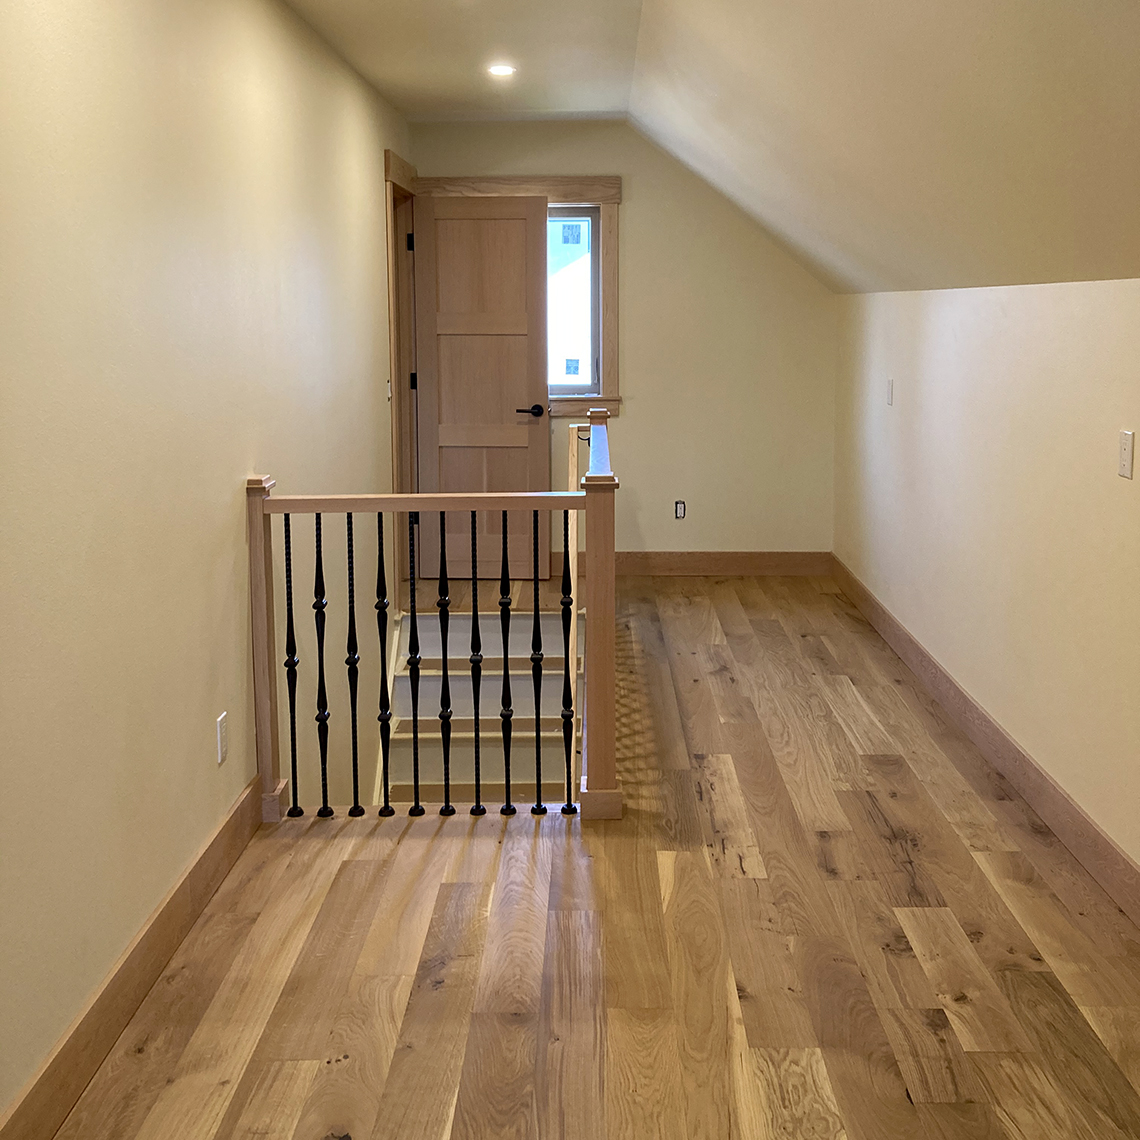 Brett Marlo Design Build Built Green 4-Star Tacoma remodel upstairs hallway